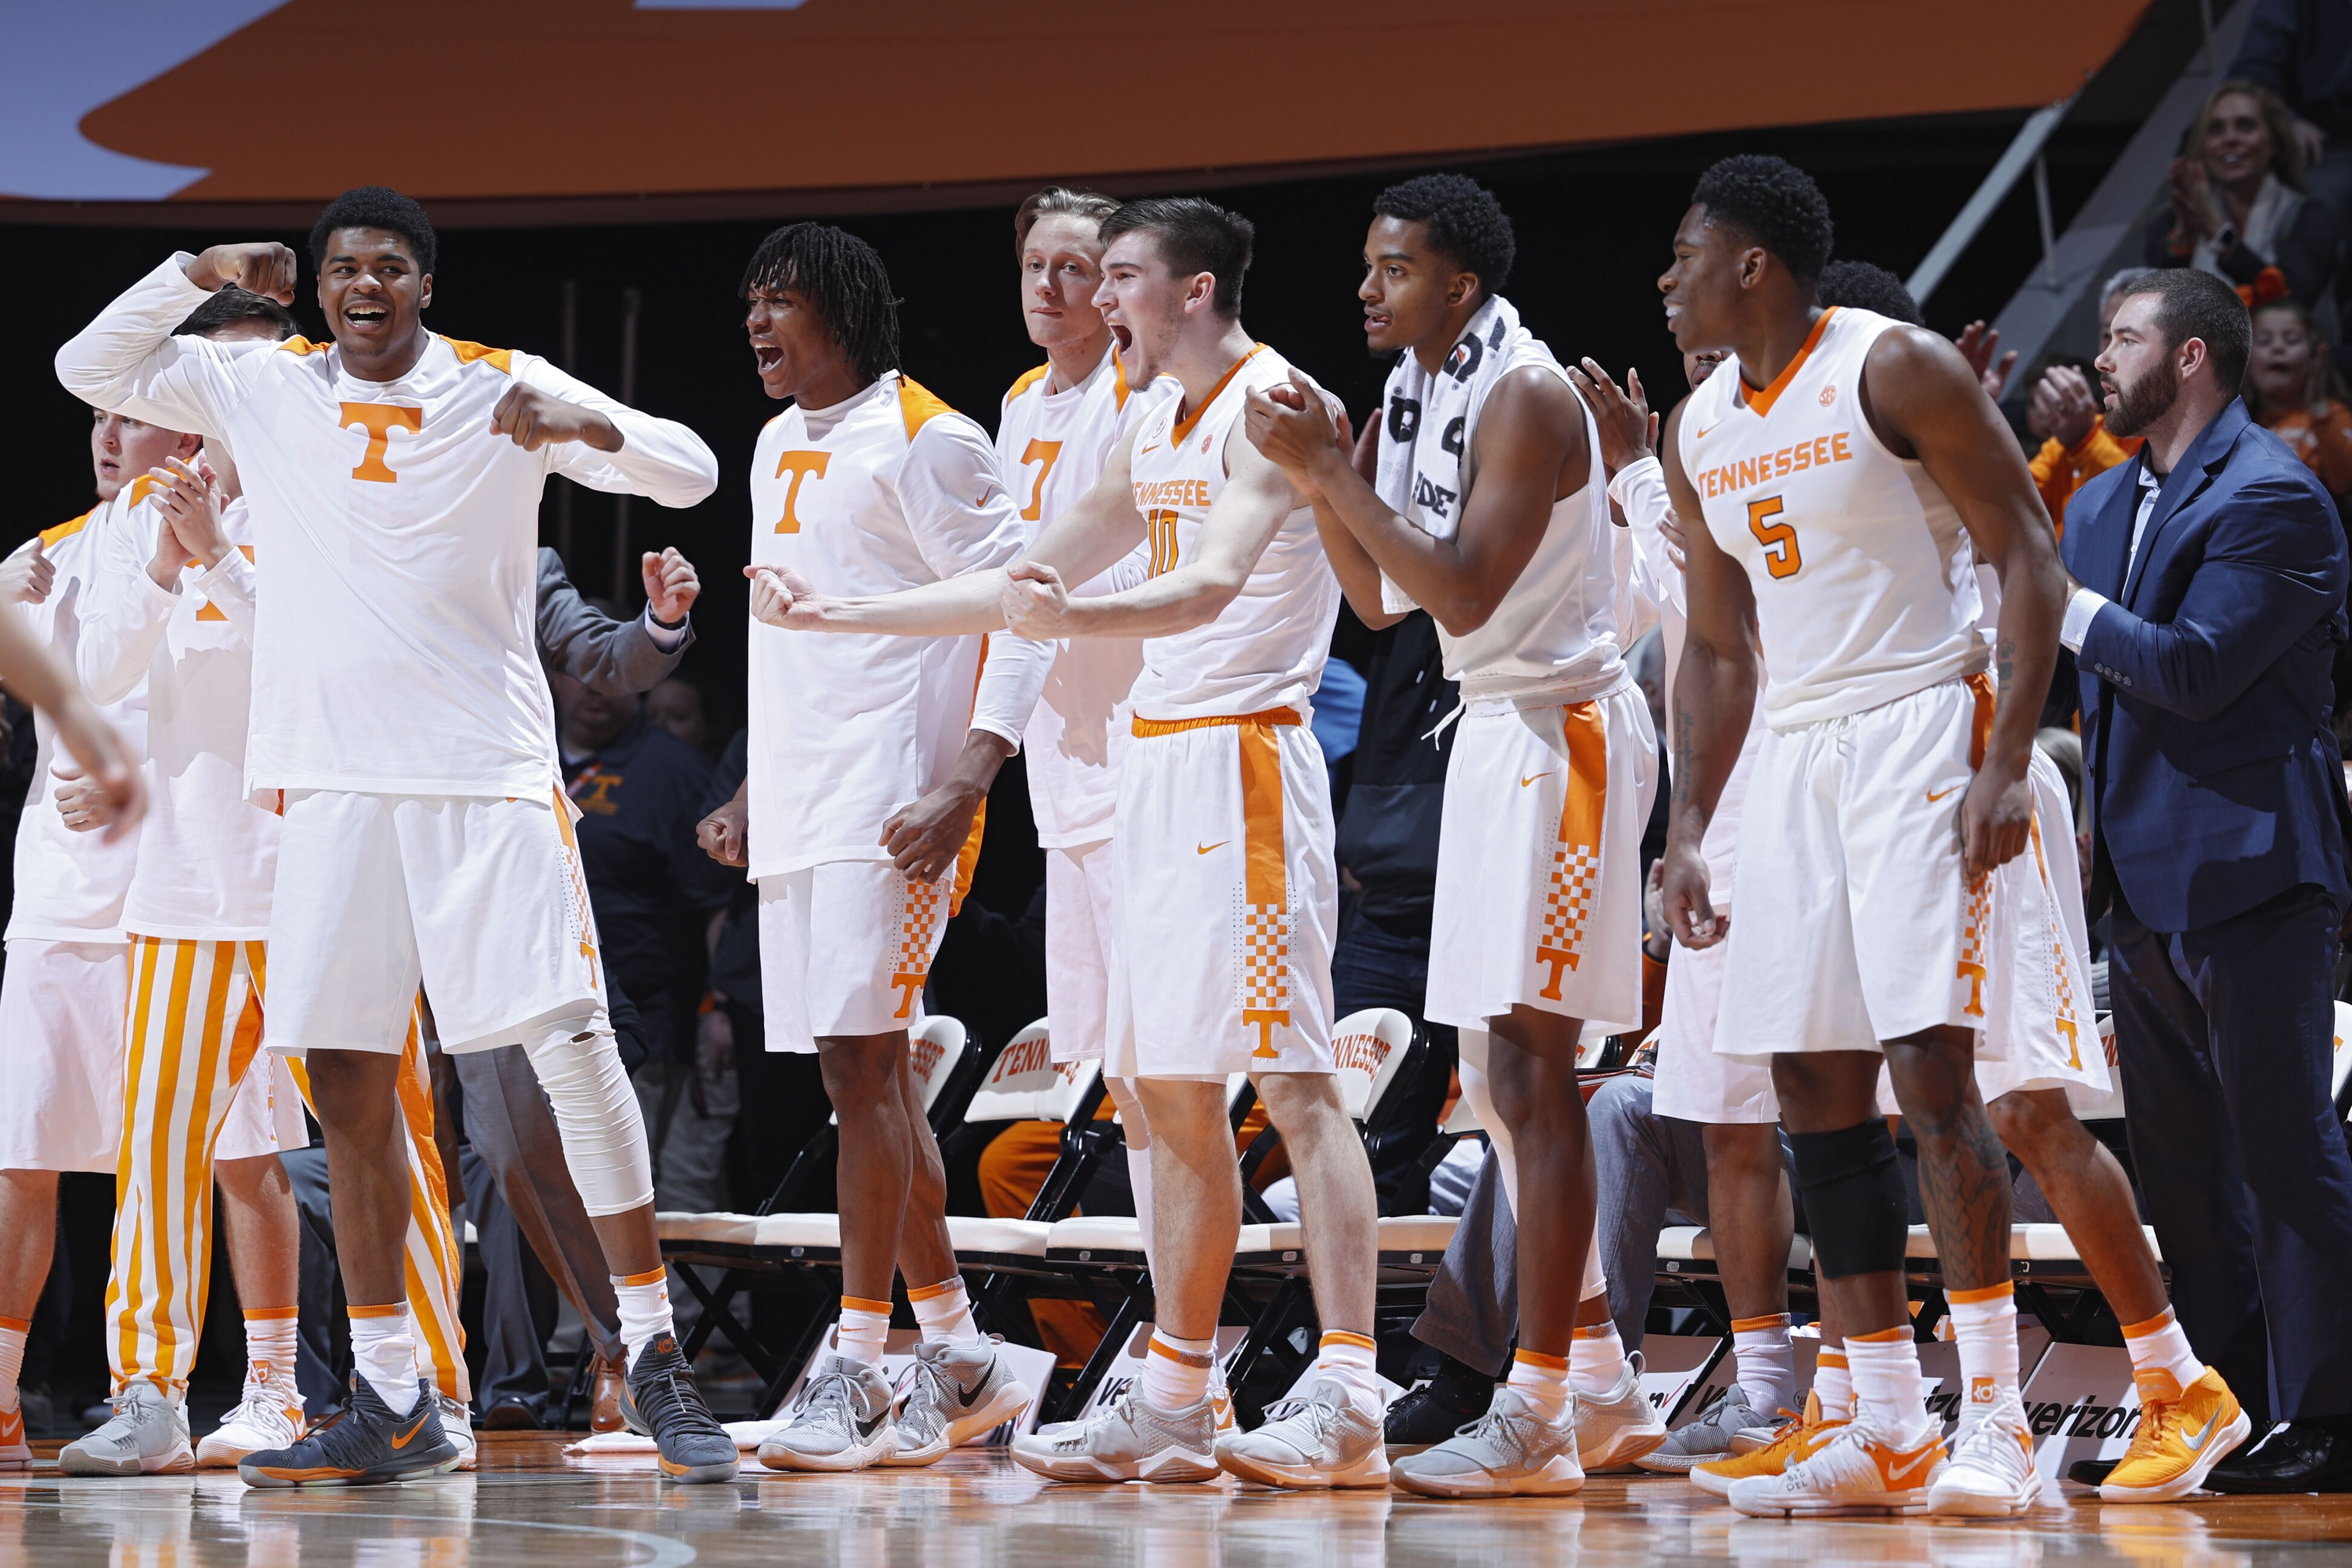 Kentucky Wildcats Basketball 2018 Sec Matchups Revealed: Tennessee Basketball: Vols Preview, Live Stream